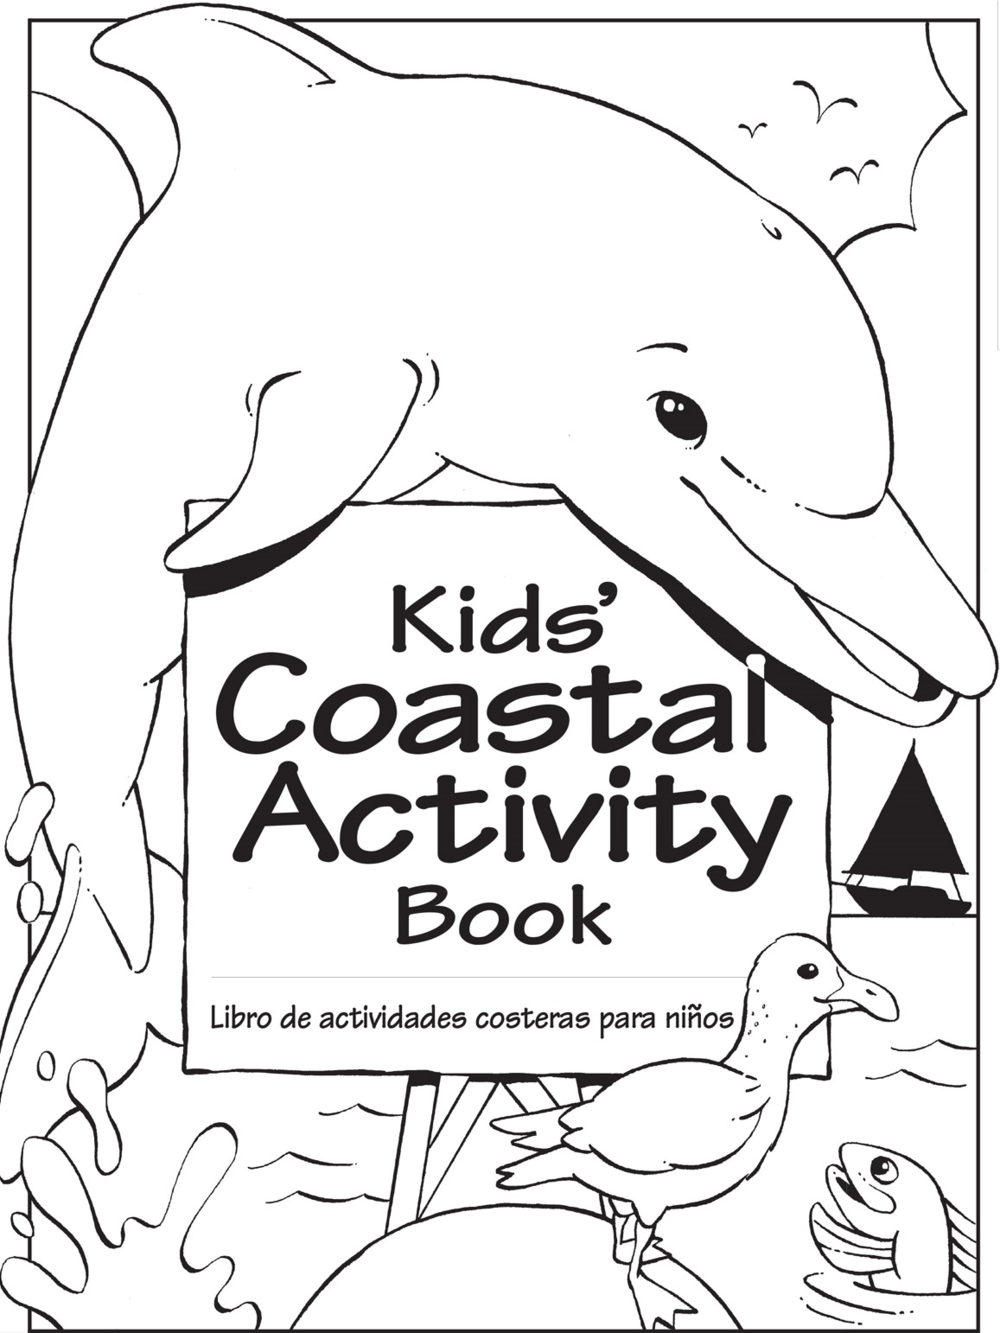 Kids' Coastal Activity Book